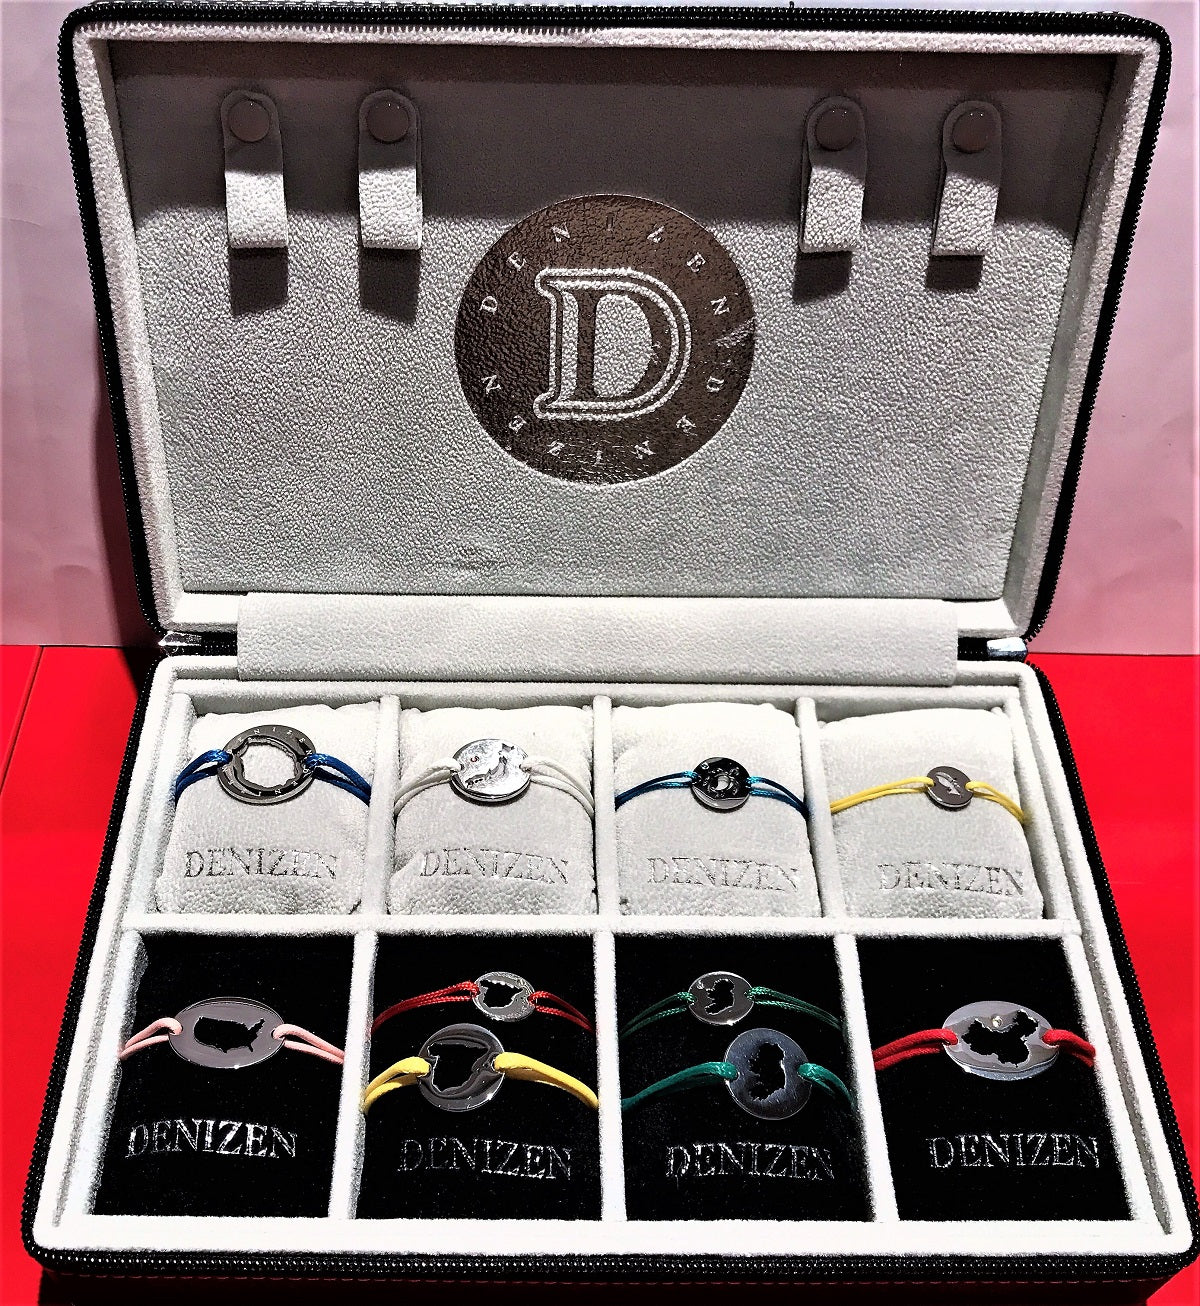 DENIZEN Bracelet demonstration pouch